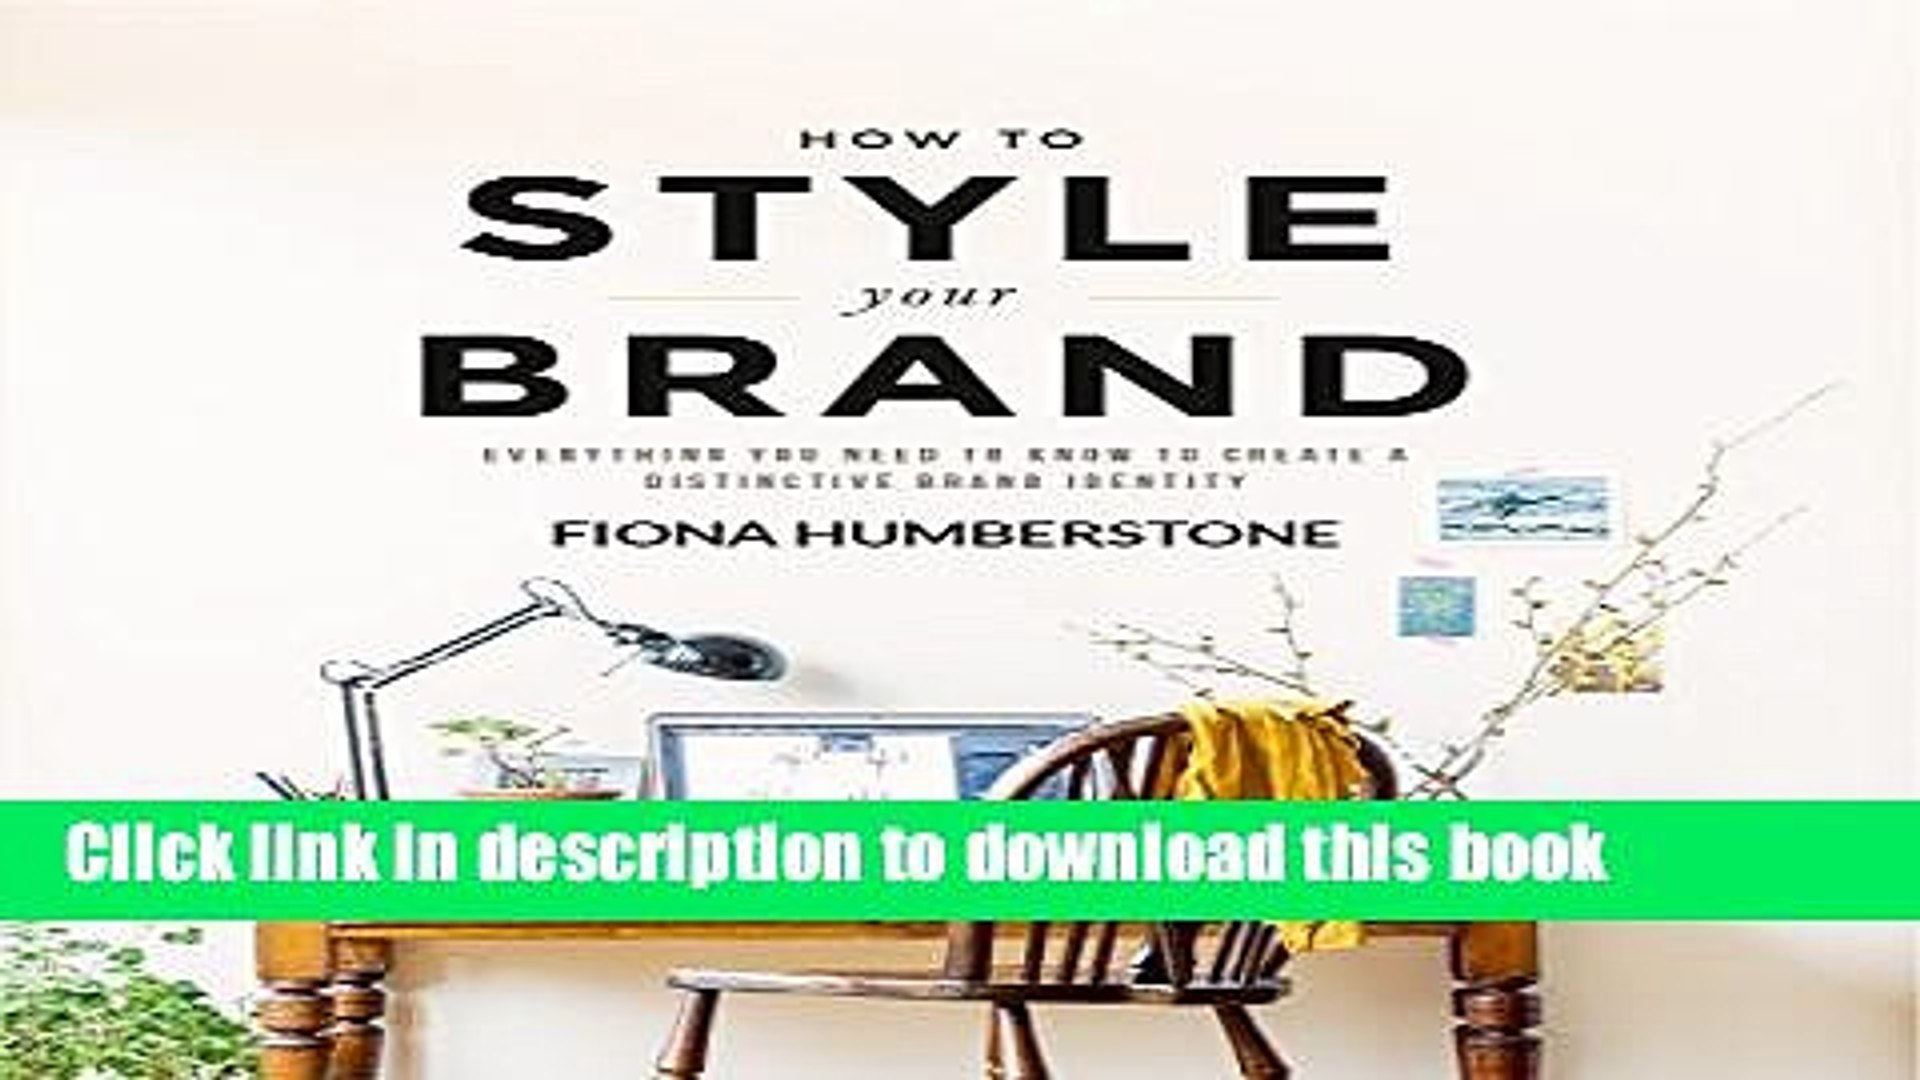 Books How to Style Your Brand: Everything You Need to Know to Create a Distinctive Brand Identity